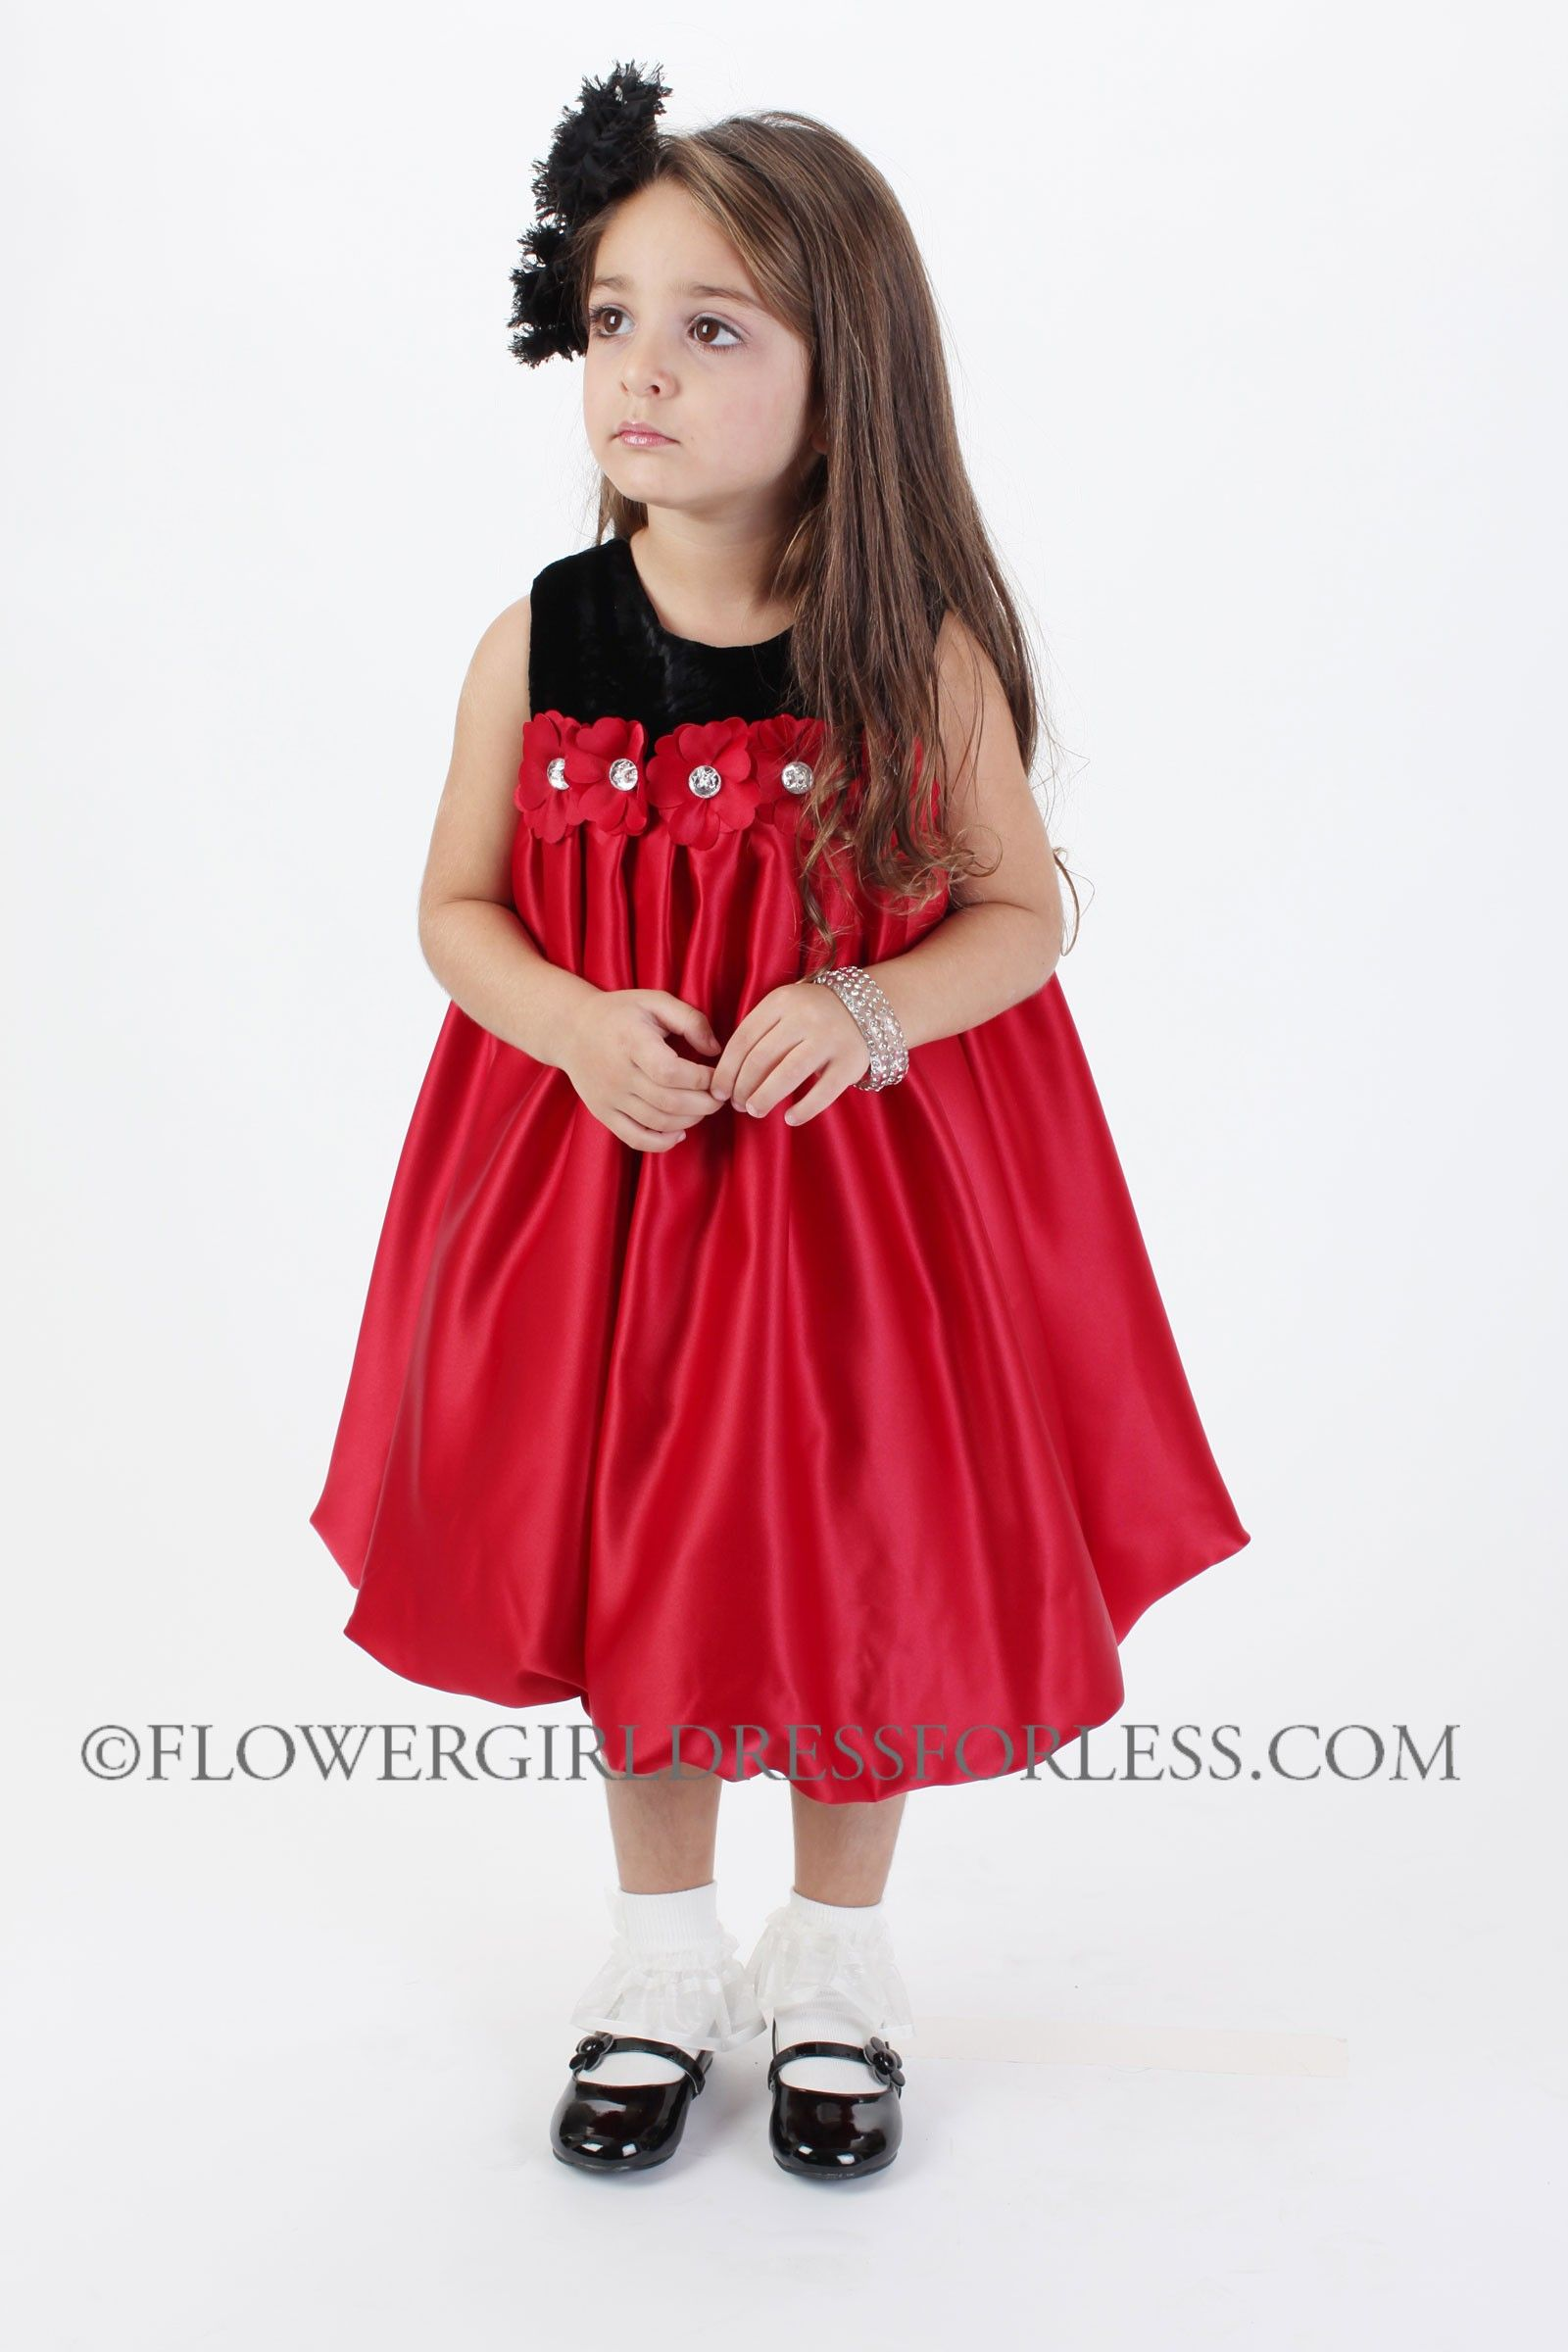 Perfect for Daily Girl Dress, Easter Dress, Christmas Dress, School Sunny Fashion Girls Dress Christmas Hat Red Velvet Long Sleeve Holiday Size by Sunny Fashion. $ - $ $ 19 $ 24 99 Prime. FREE Shipping on eligible orders. Some sizes/colors are Prime eligible. out of .